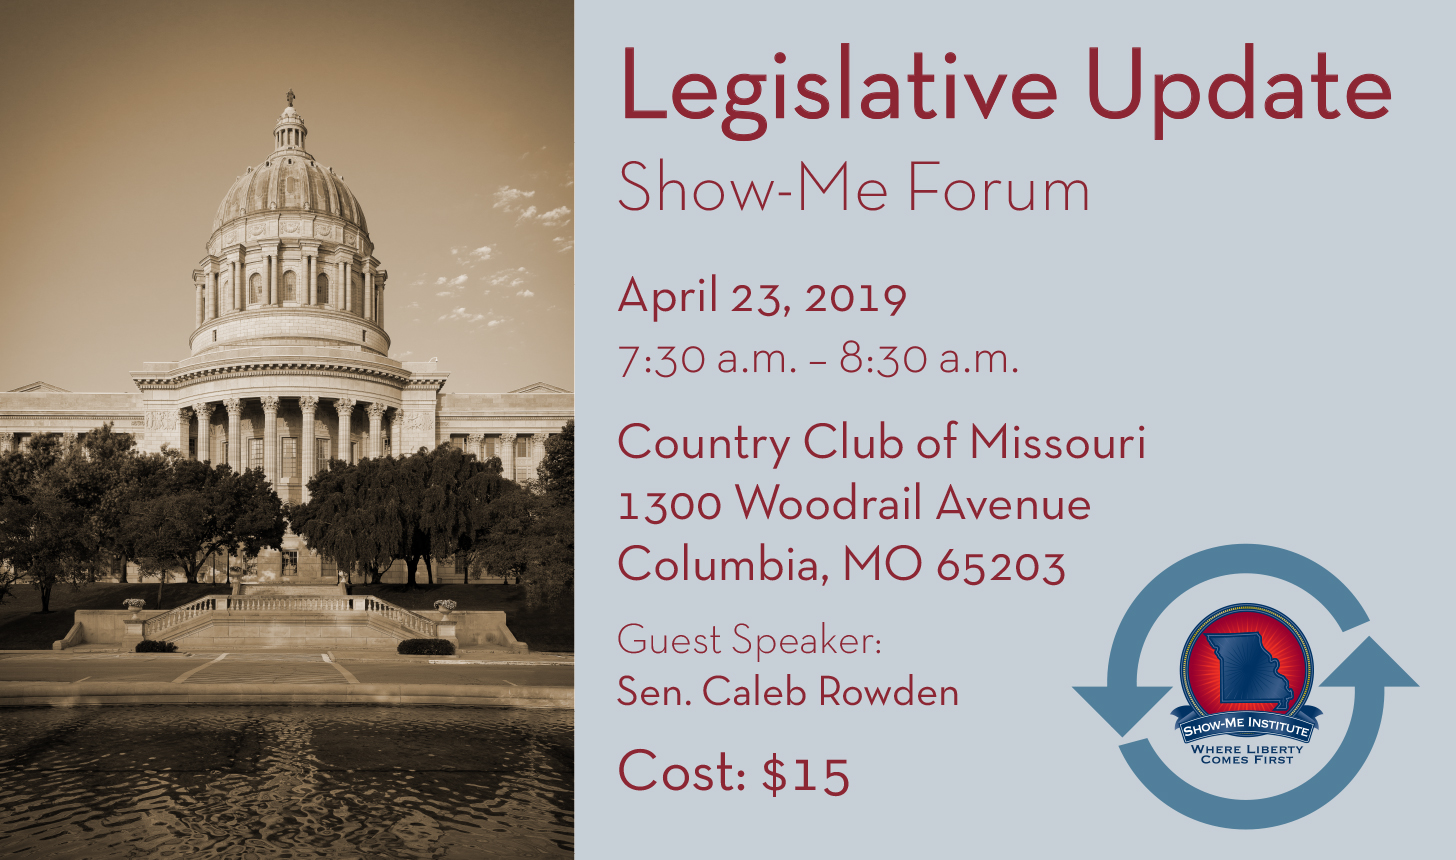 Legislative Update - Columbia Forum